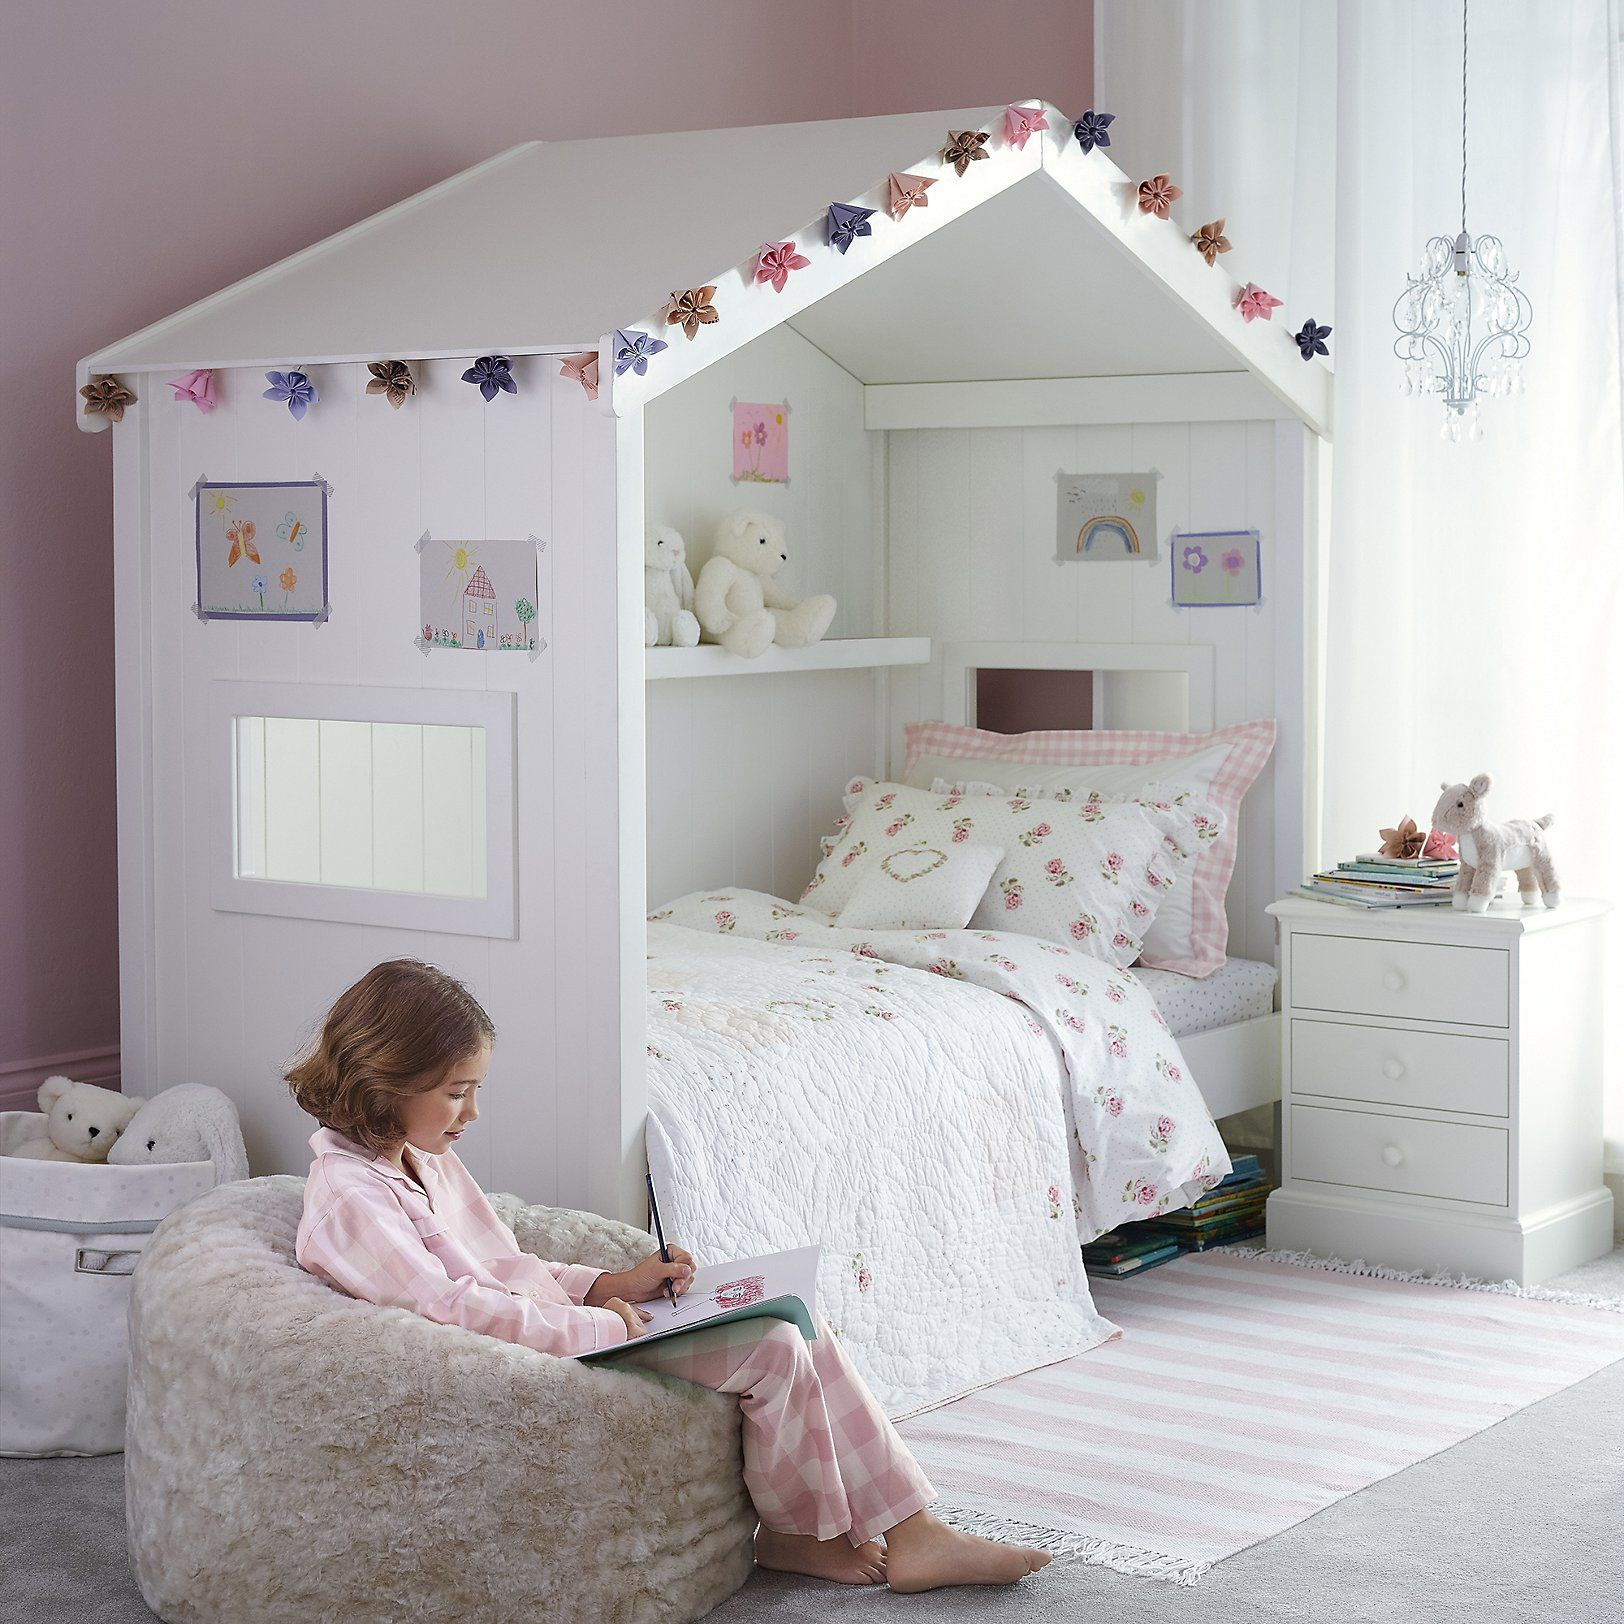 Classic House Day Bed Beds The White Company Childrens